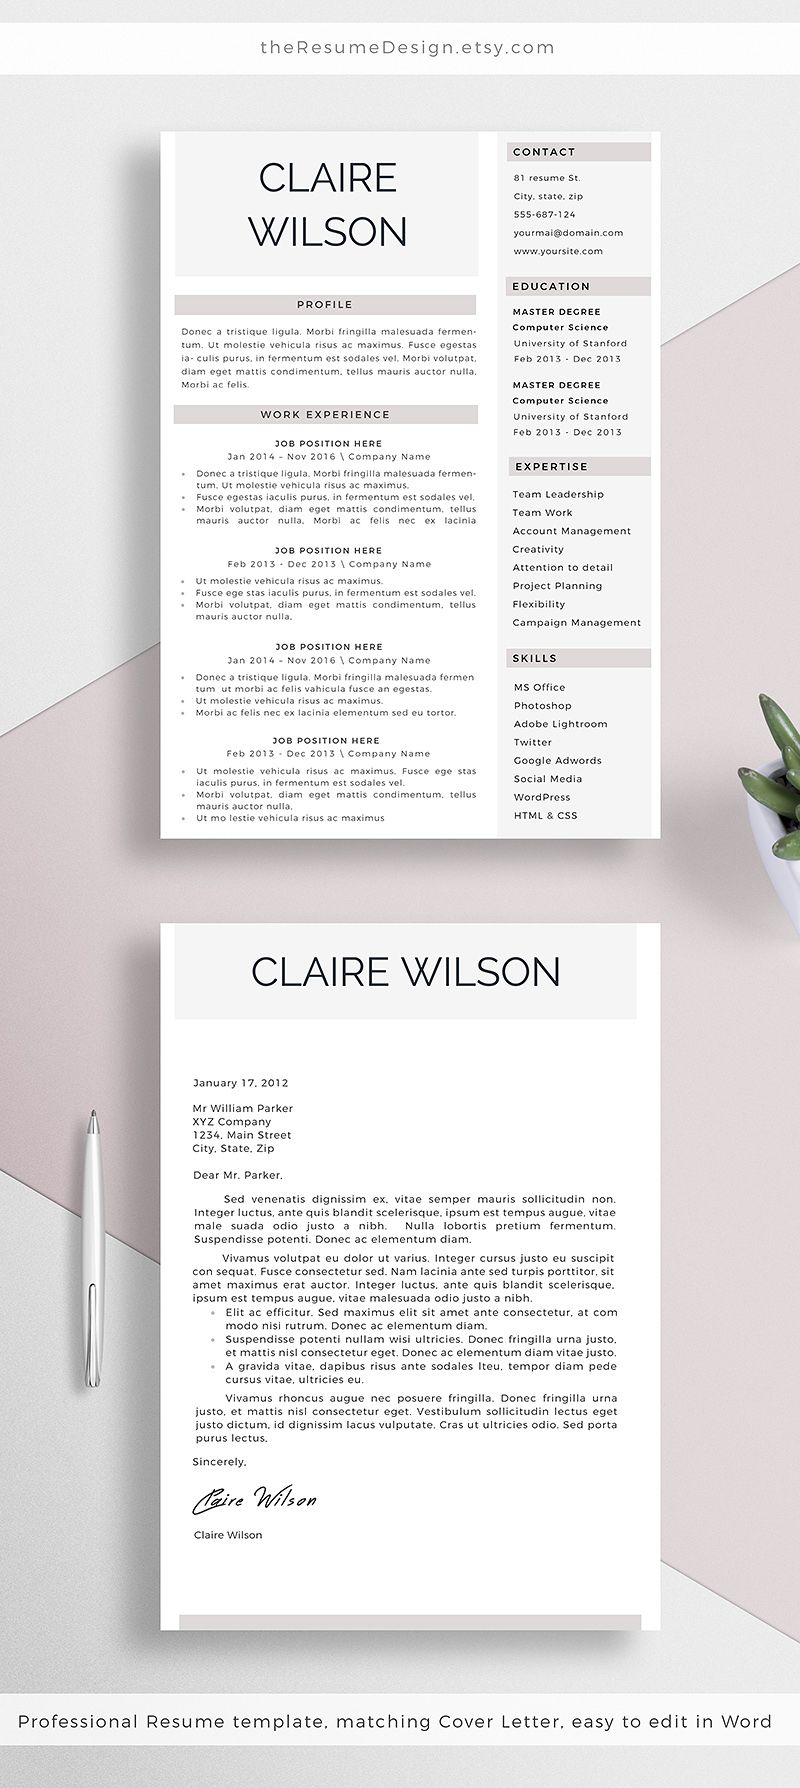 professional resume template   cover letter for word  creative cv design  instant download  a4